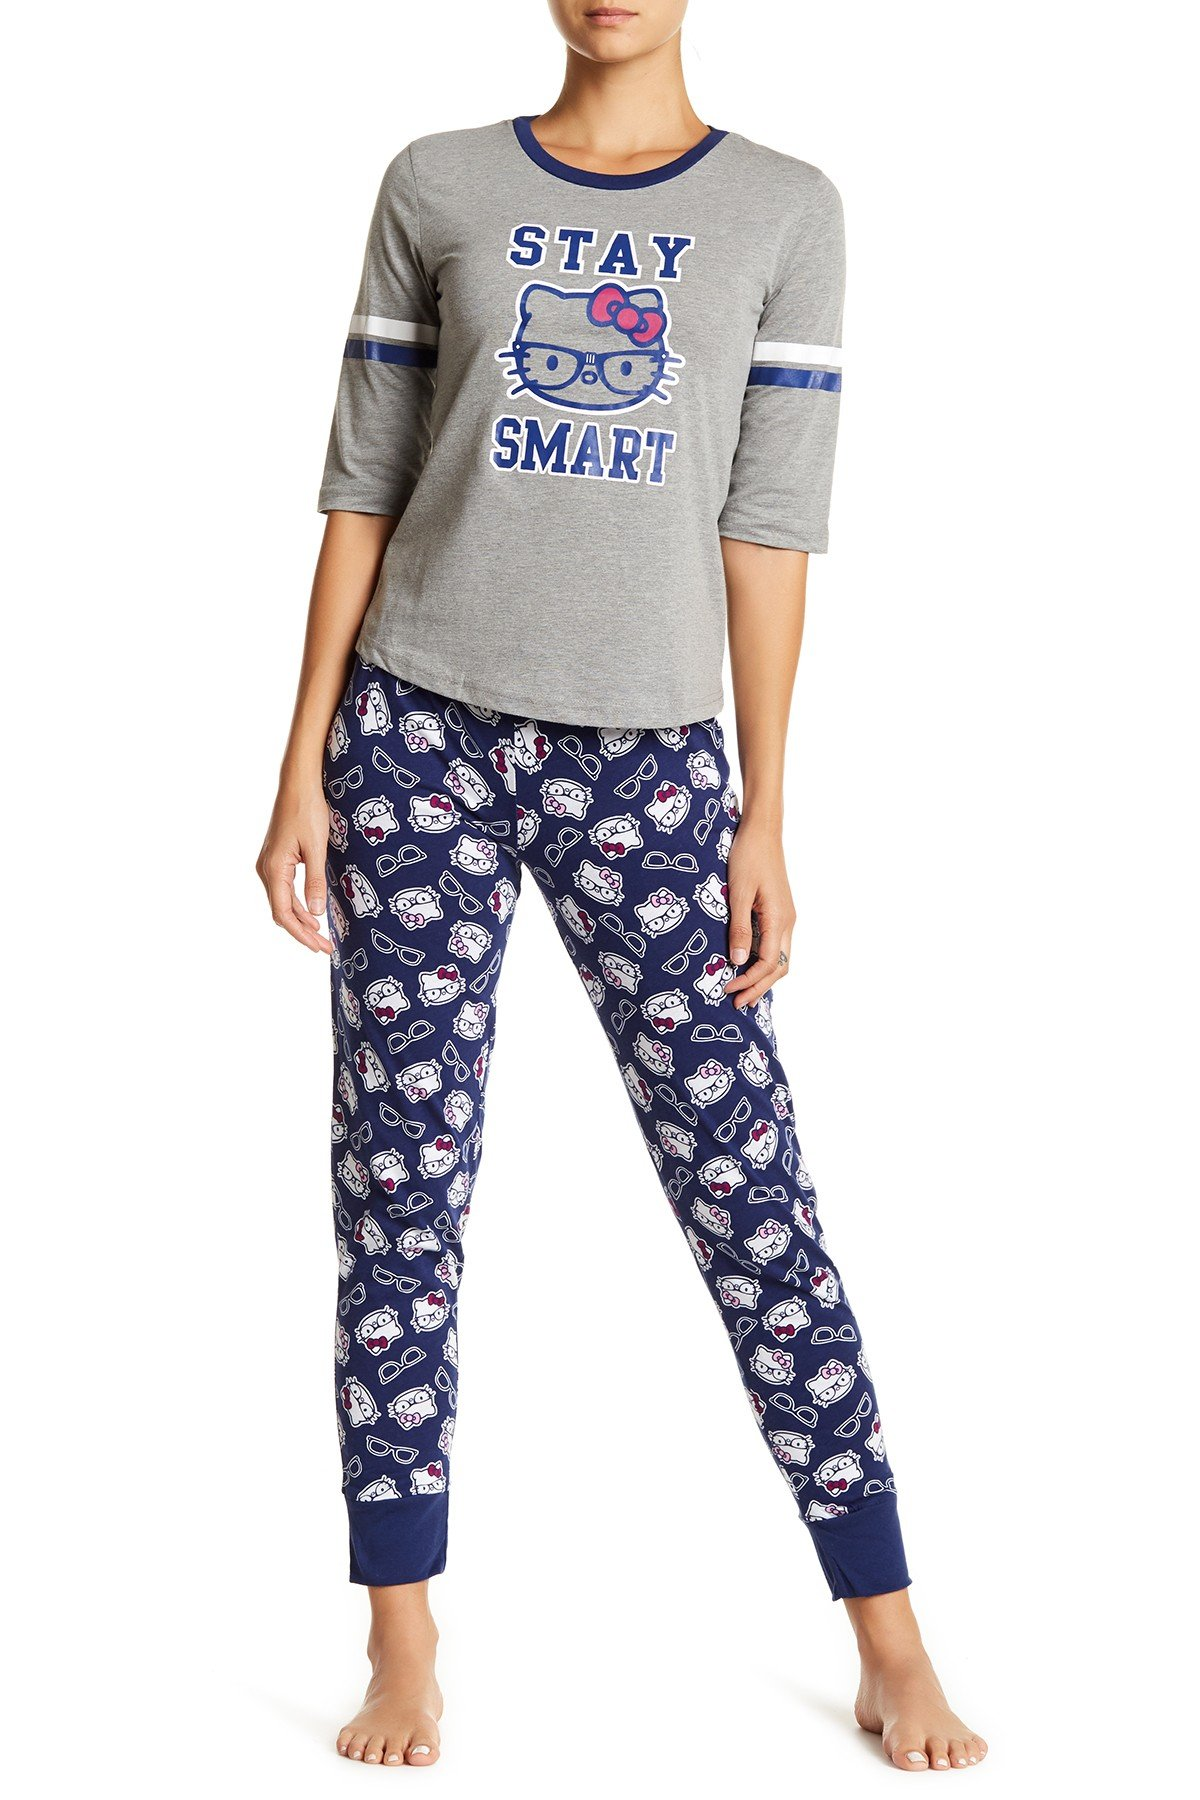 Women's Pajamas hello kitty - smart kitty 2-piece pajama set BUEDNFI